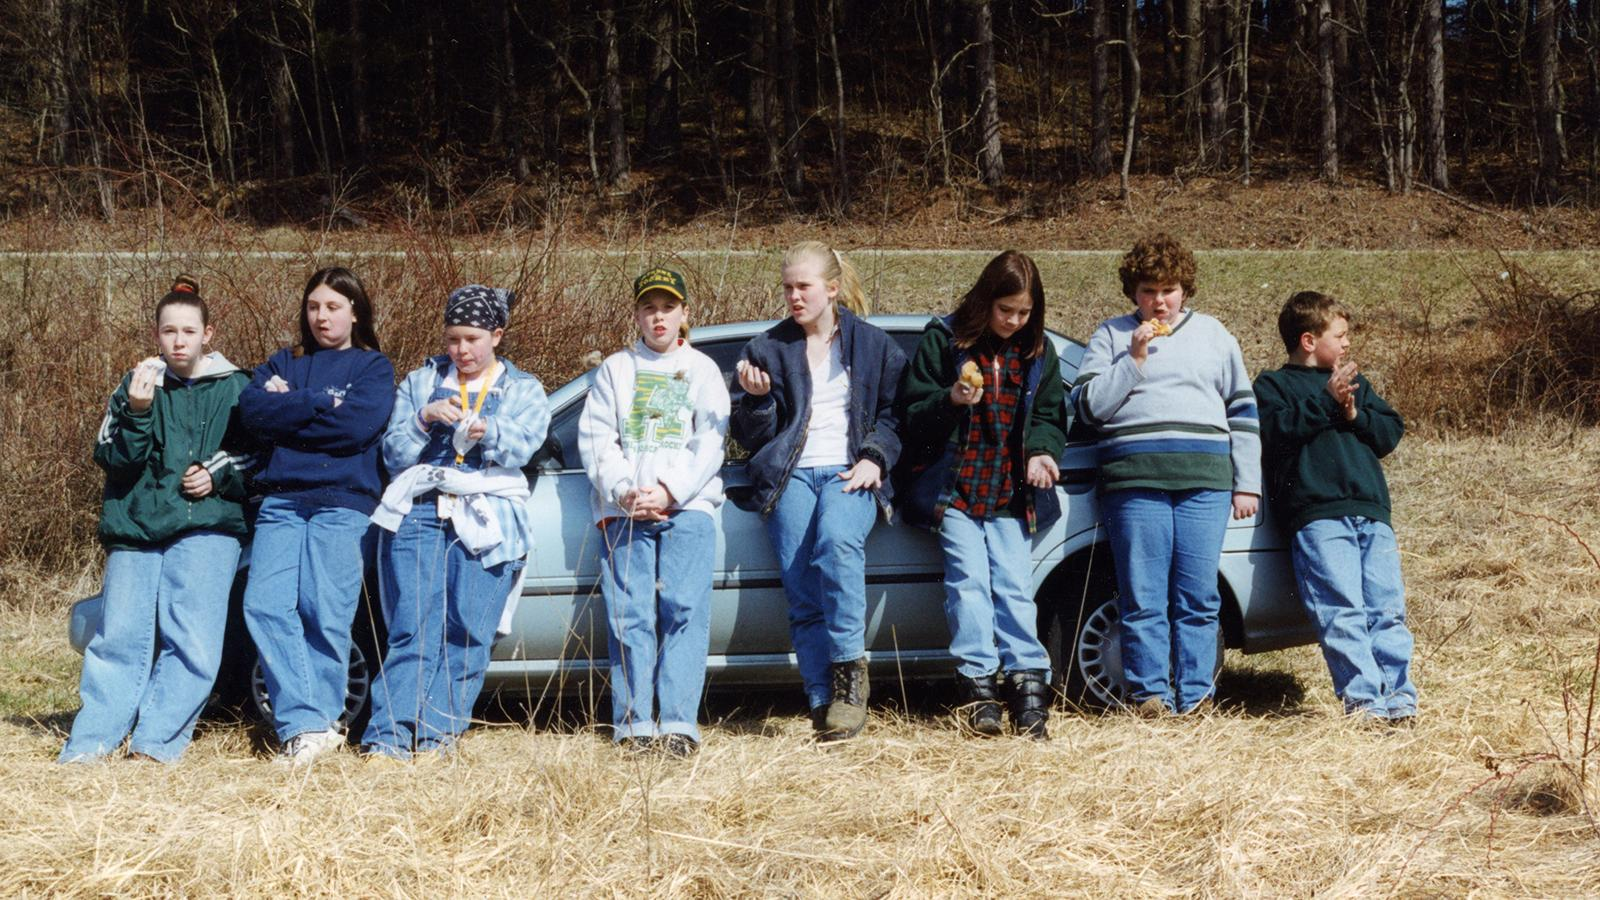 Volunteer tree-planters taking a break, North of Carbon Hill in Hocking County